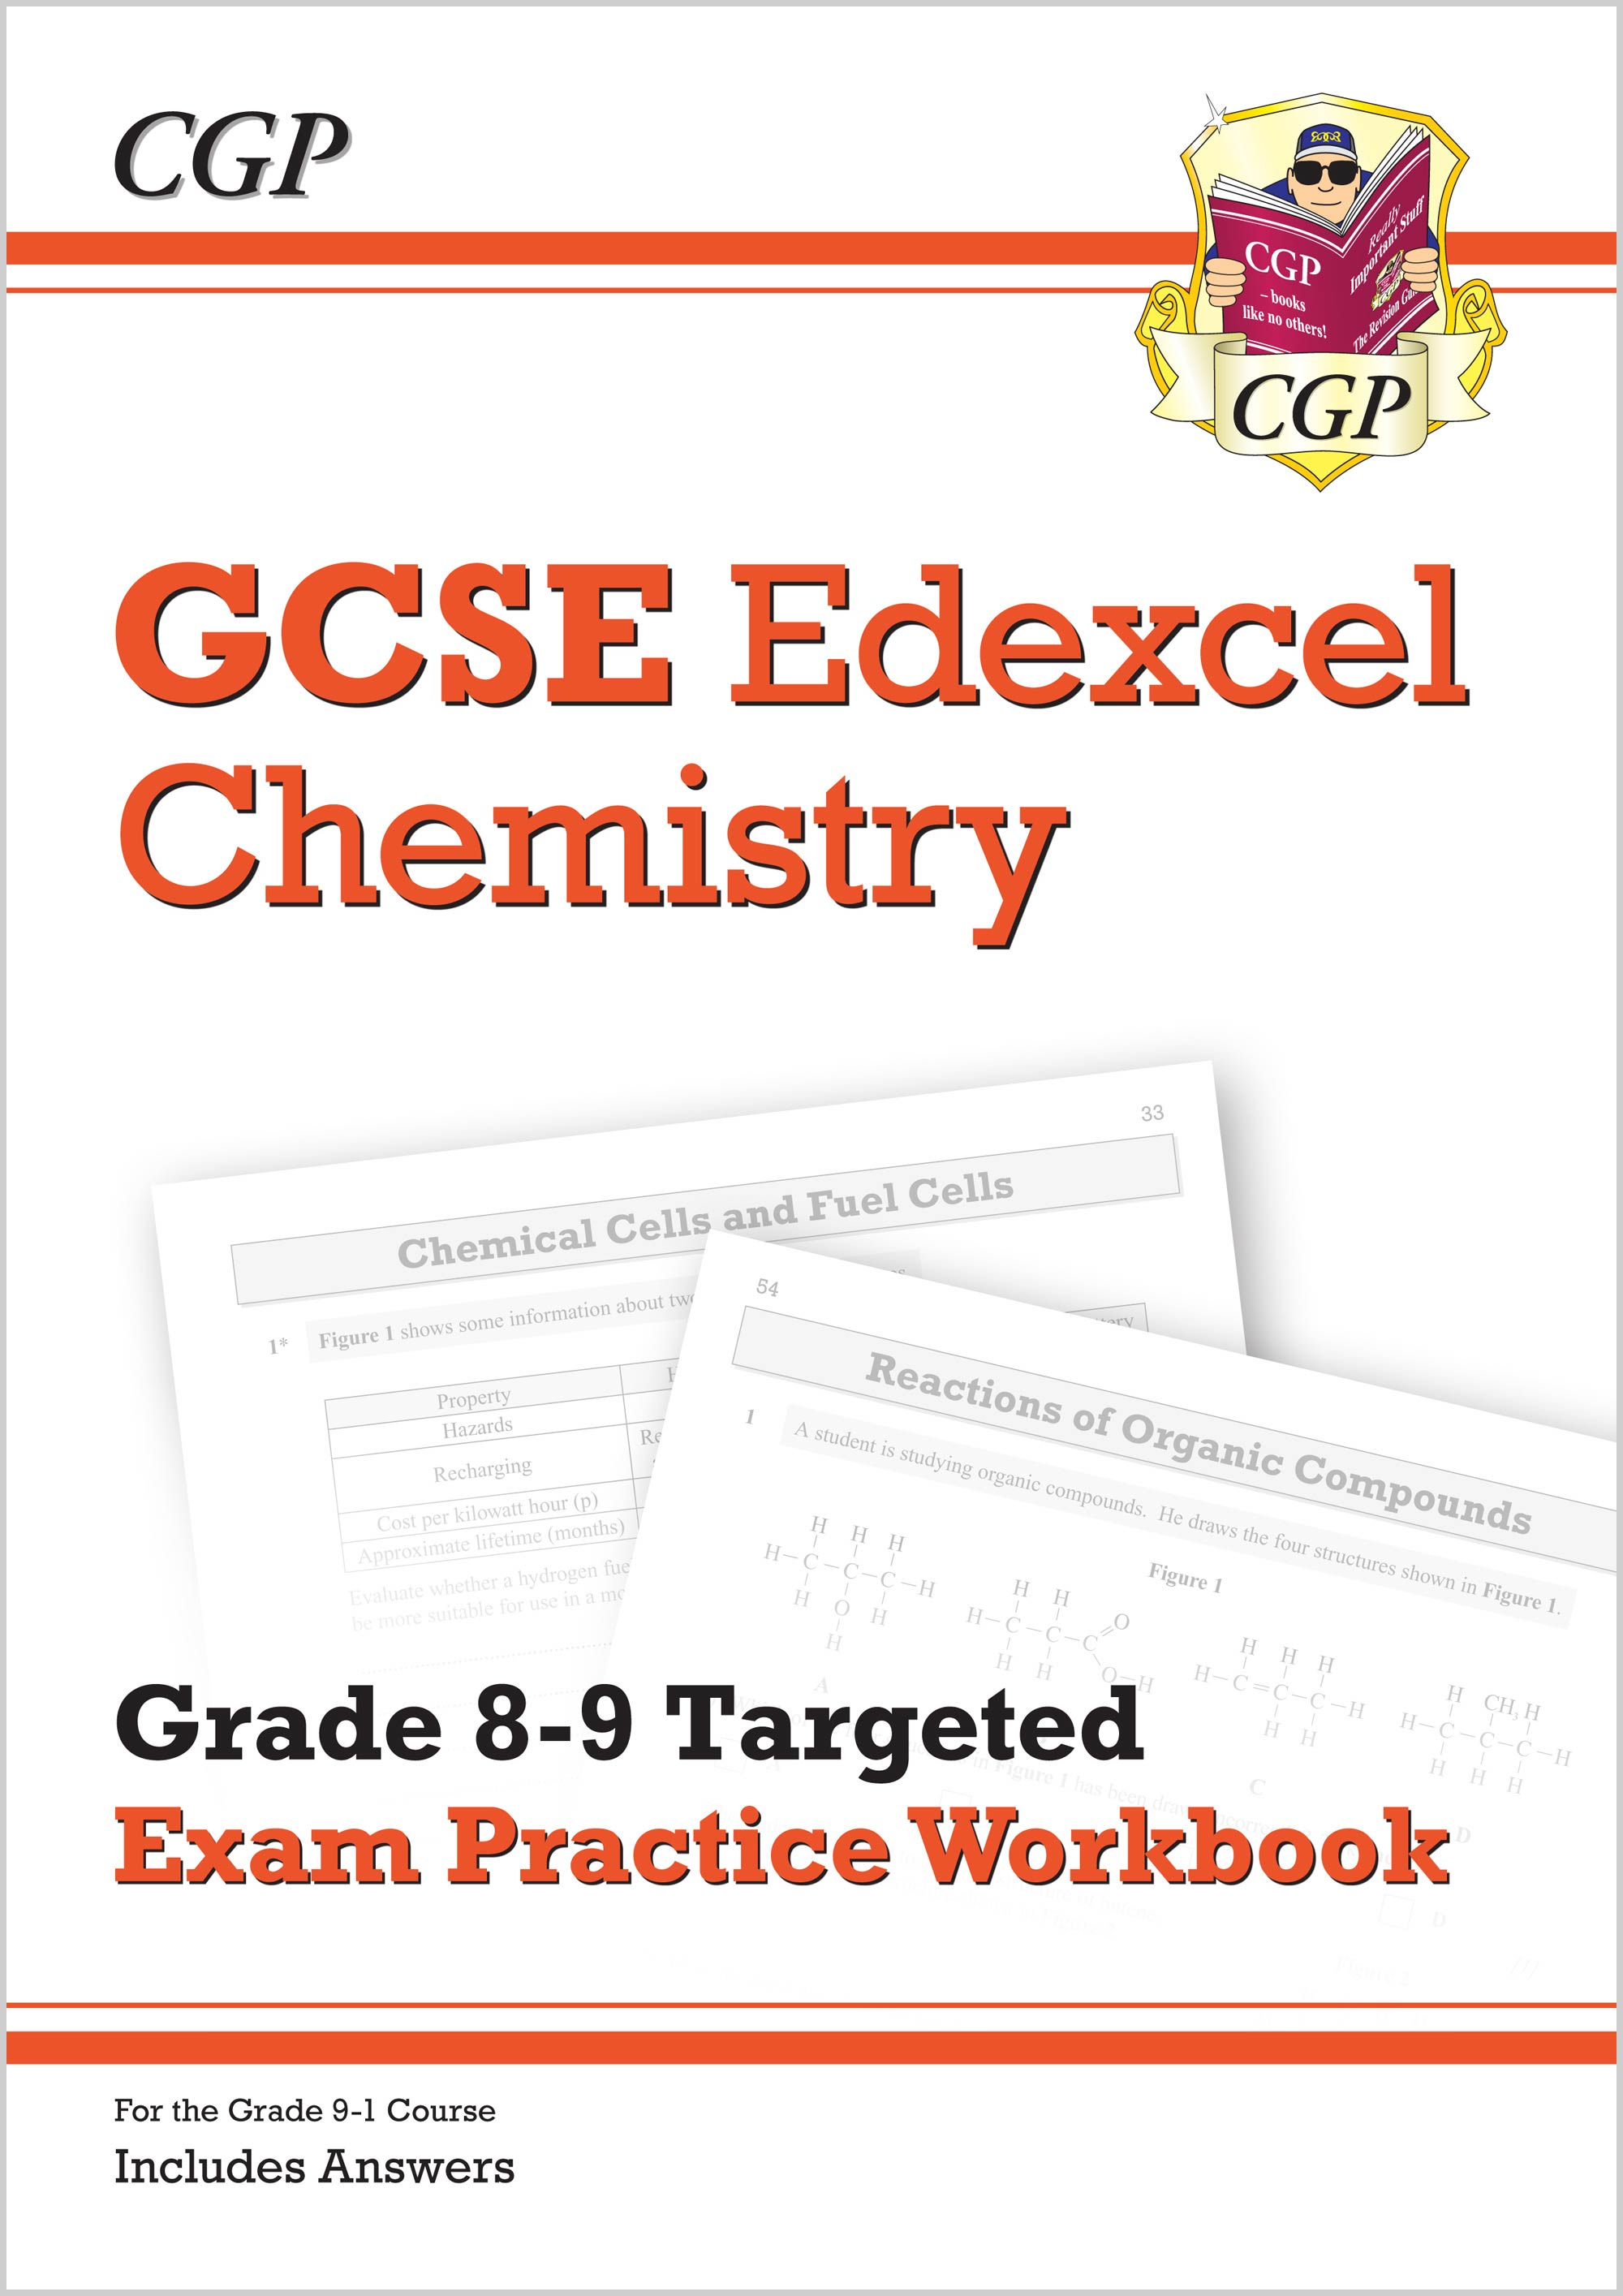 CE9Q41 - New GCSE Chemistry Edexcel Grade 8-9 Targeted Exam Practice Workbook (includes Answers)